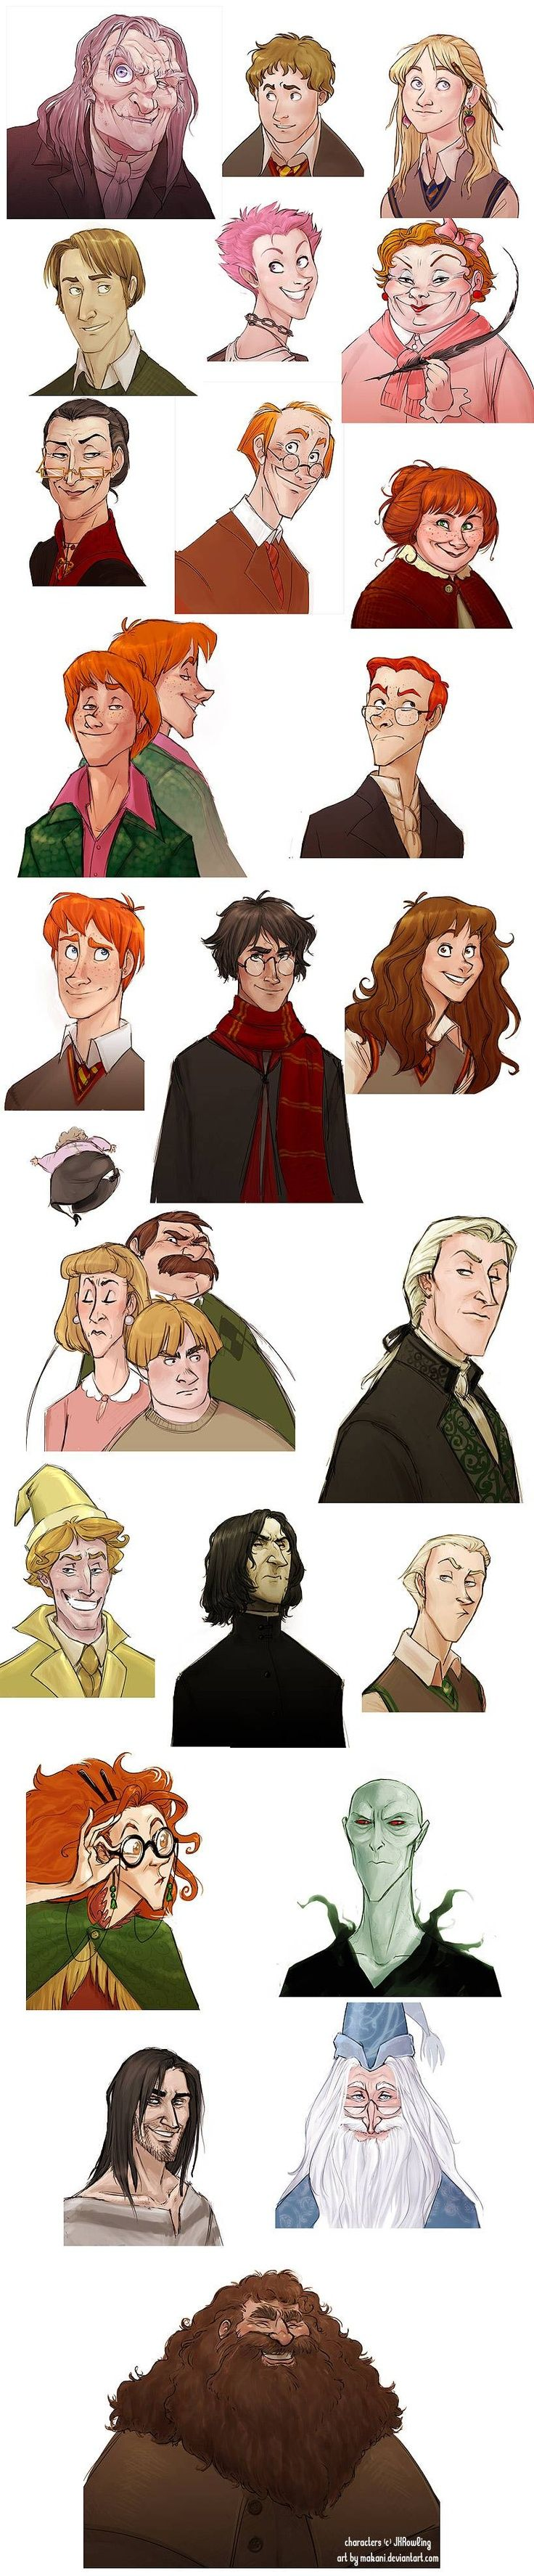 Harry Potter - #drawing #cartoon #ilustration